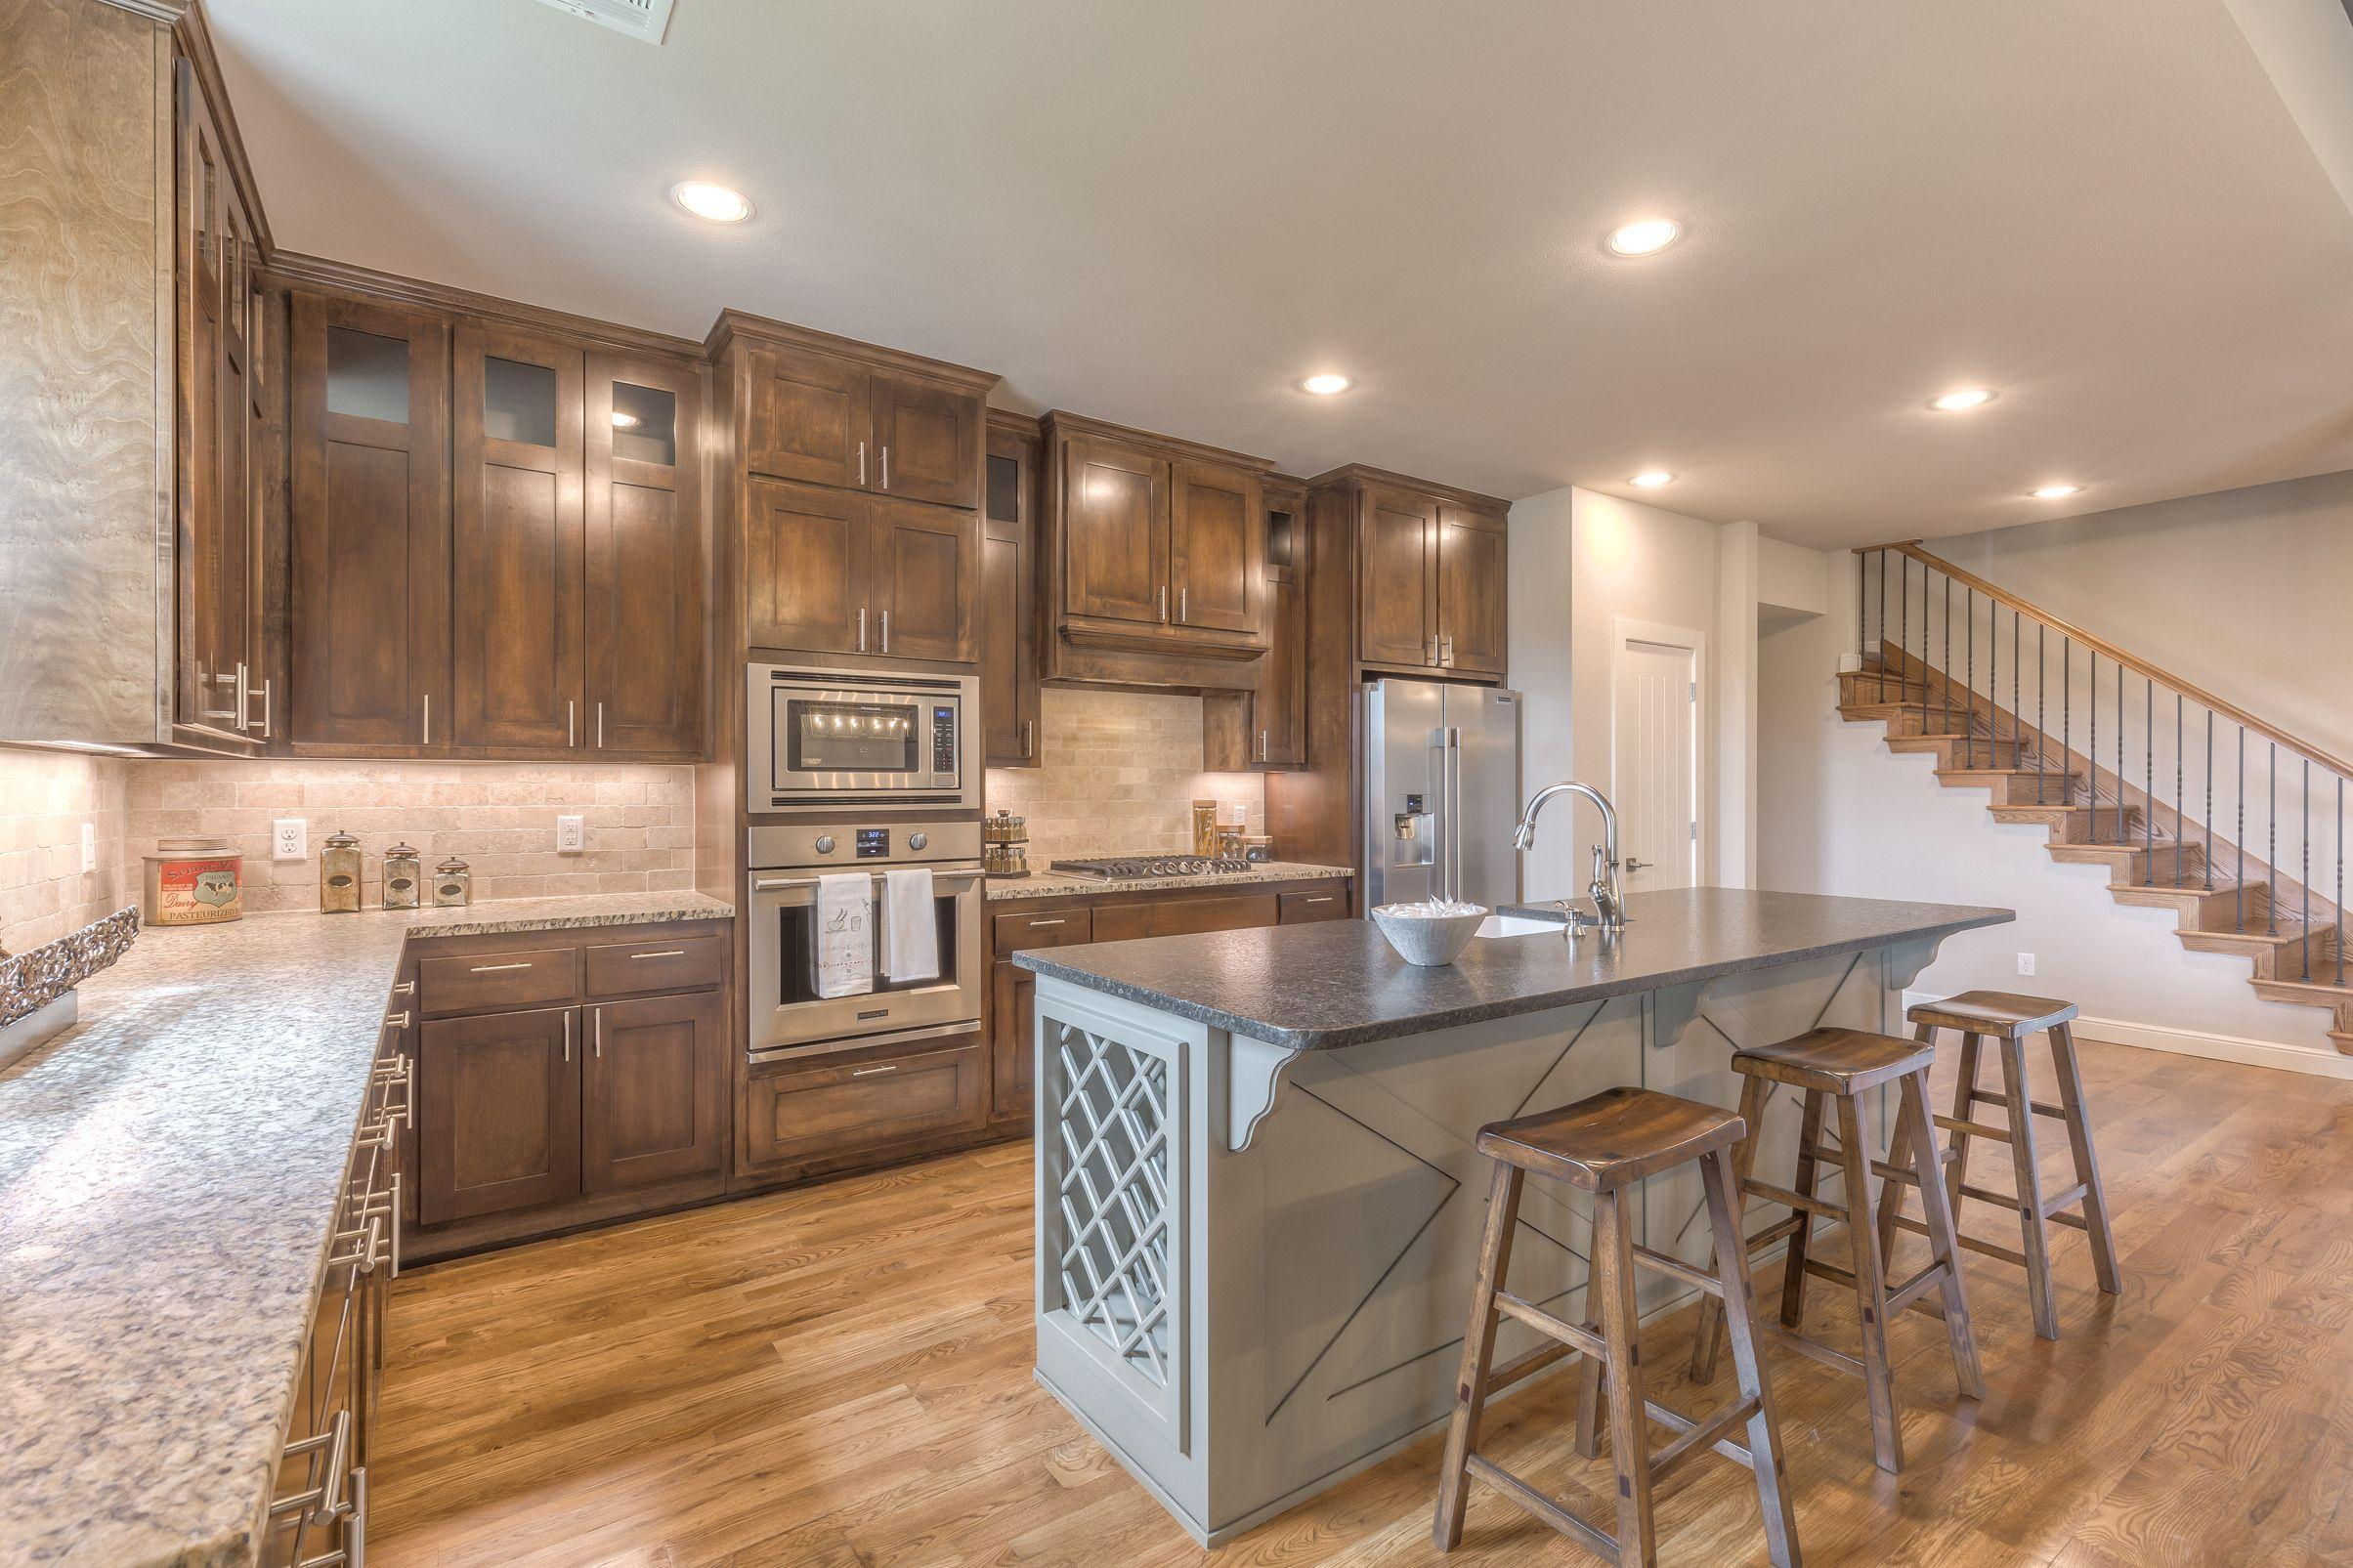 Kitchen featured in the Conner II Exp By Concept Builders, Inc in Tulsa, OK